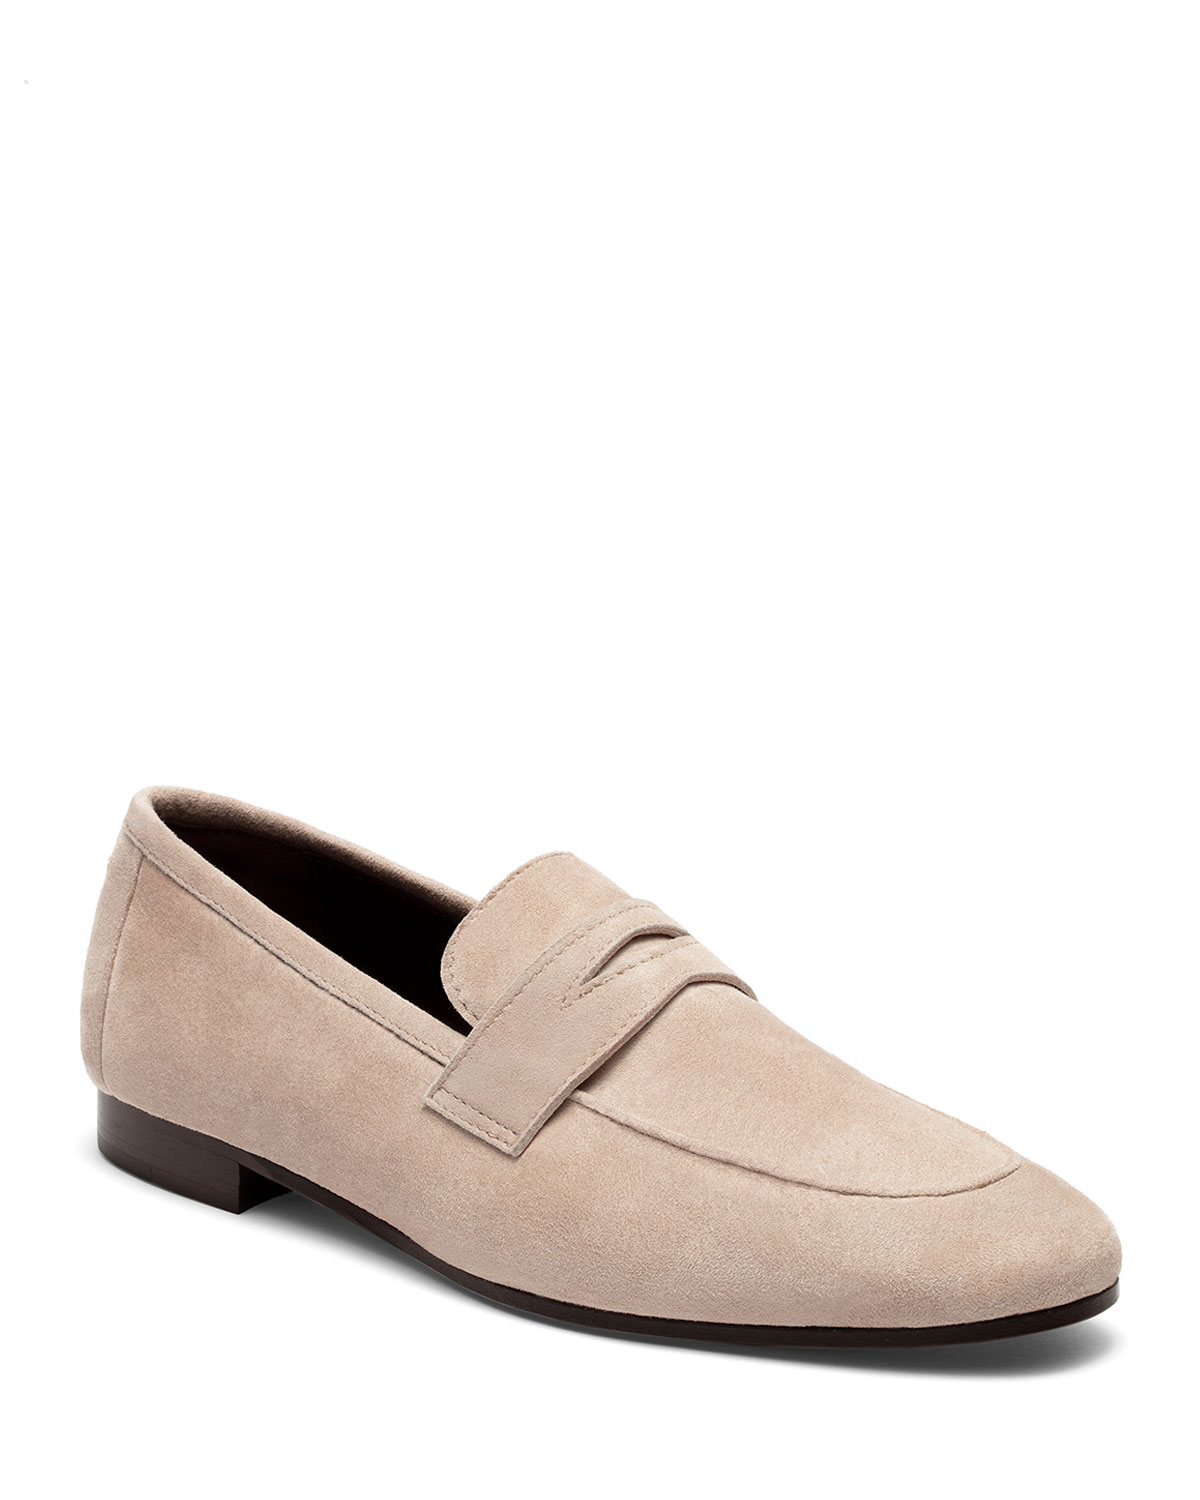 Flaneur Suede Flat Penny Loafers